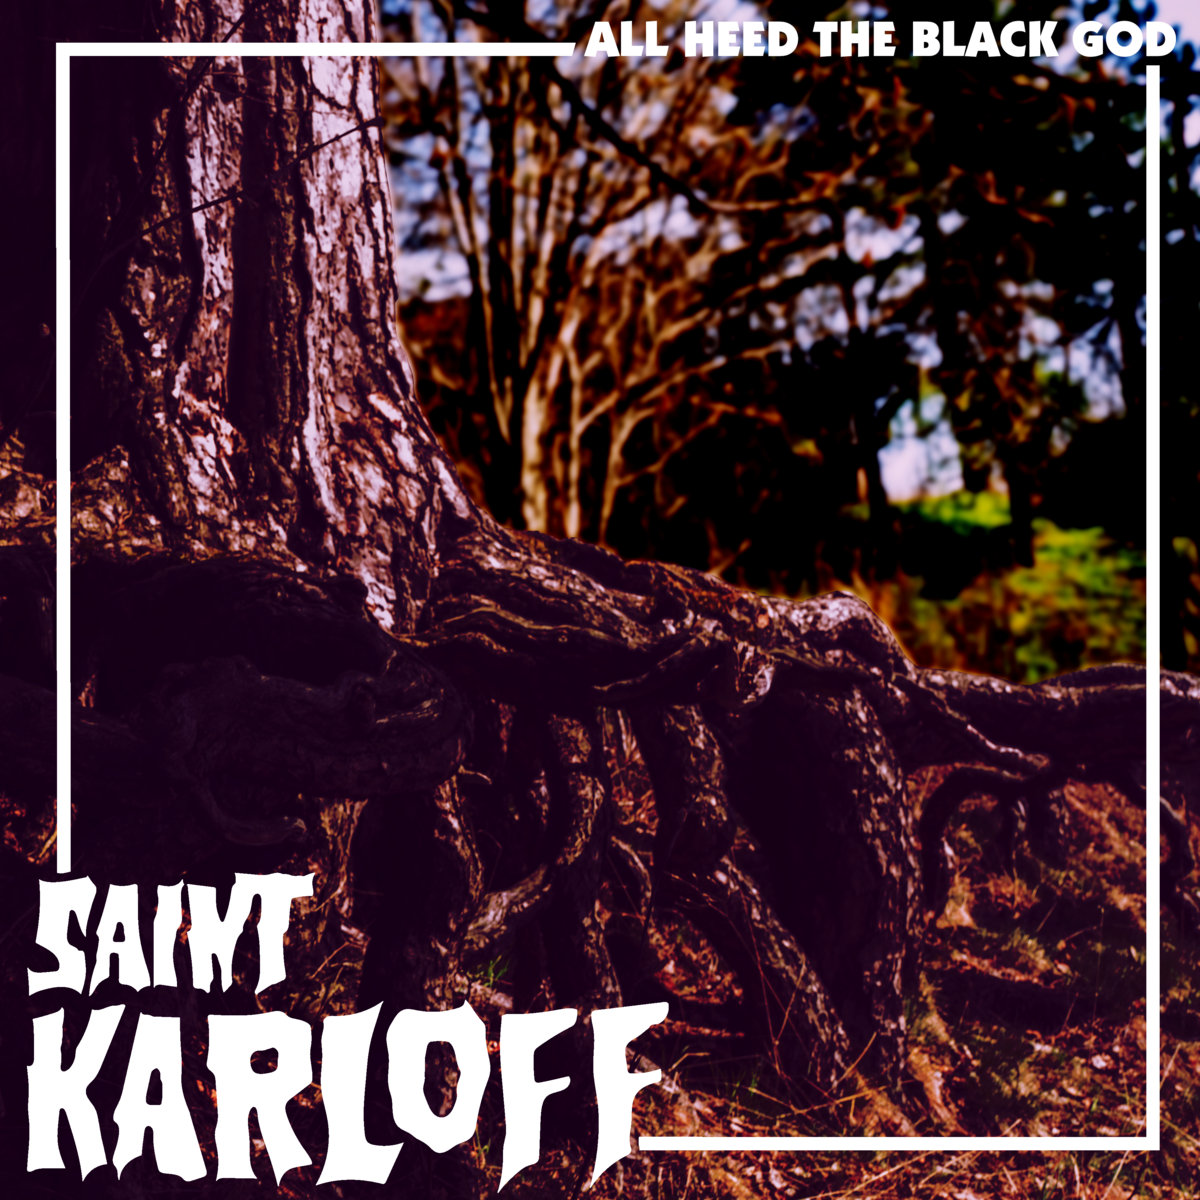 All Heed The Black God by Saint Karloff -   You had me at Karloff. Grinning from ear to ear as I examine the Evil Dead II crossed with Hammer Horror vibes artwork, I know exactly what I'm in for. Even by the off chance that the music isn't that great, I am simply happy about the fact that there is a Norwegian band actually called Saint Karloff and the album cover looks very rooted (no pun intended, nods to Evil Dead tree rape scene) in horror.Nostalgia, love, and nerdy passion for classic horror kicks in. So I quickly dim the lights, microwave some popcorn, grab the bong, and hit the record player with a VENGEANCE. And I'm quickly assured that this is not just nostalgia chemicals swirling in my brain and they are no gimmick; because the music is fantastic. In fact, everything I would like it to be.Break down the door, Frankenstein's monster! Saint Karloff are here to pay respects to our horror elder gods as well as melt your face and/or mind with some classic heavy metal. Whether or not their name is a nod to his work as the monster, or an even more obscure nod to the lords of metal and doom themselves, Black Sabbath,( name artistically licensed and summoned from the Karloff film of the same title...if you don.t know, now you know, children), I'm beyond down with it.So far, it sounds like we're in for a nostalgic horror ridden psychedelic doom trip into a haunted forest full of black magic, undead souls, rock,shock and Sabbath worship? Well, actually, yes. yes we are. and if that ain't up your alley... first of all, I don't want to be friends with you; and second of all,l this record is not for you. But Saint Karloff offers a lot more than Sabbath worship as I don't mean to discredit their originality, they are a uniquely sounding band that demonstrate solid musicianship and horrific creativity throughout the whole record. And that, my friends, is a grave worth digging.  The epic, 7-plus minute,complete with a phenomenal mood-setting intro,Ghost Smoker, is enough to